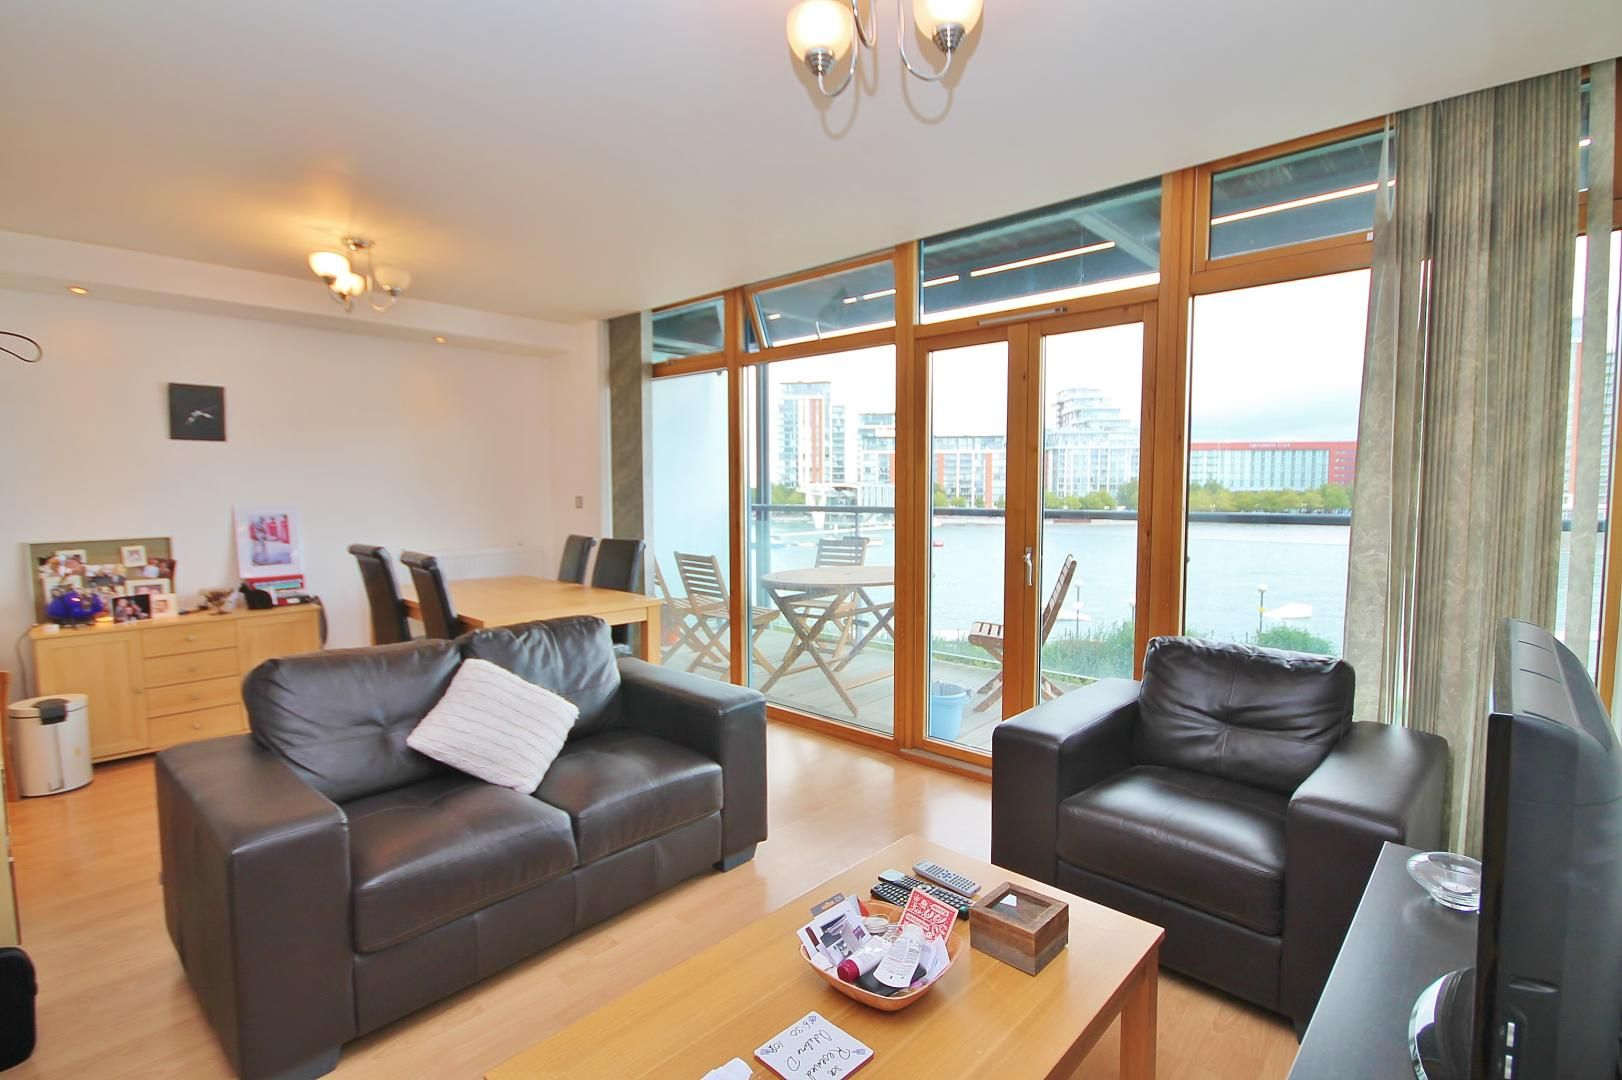 1 bed flat to rent in Hanover Avenue - Property Image 1